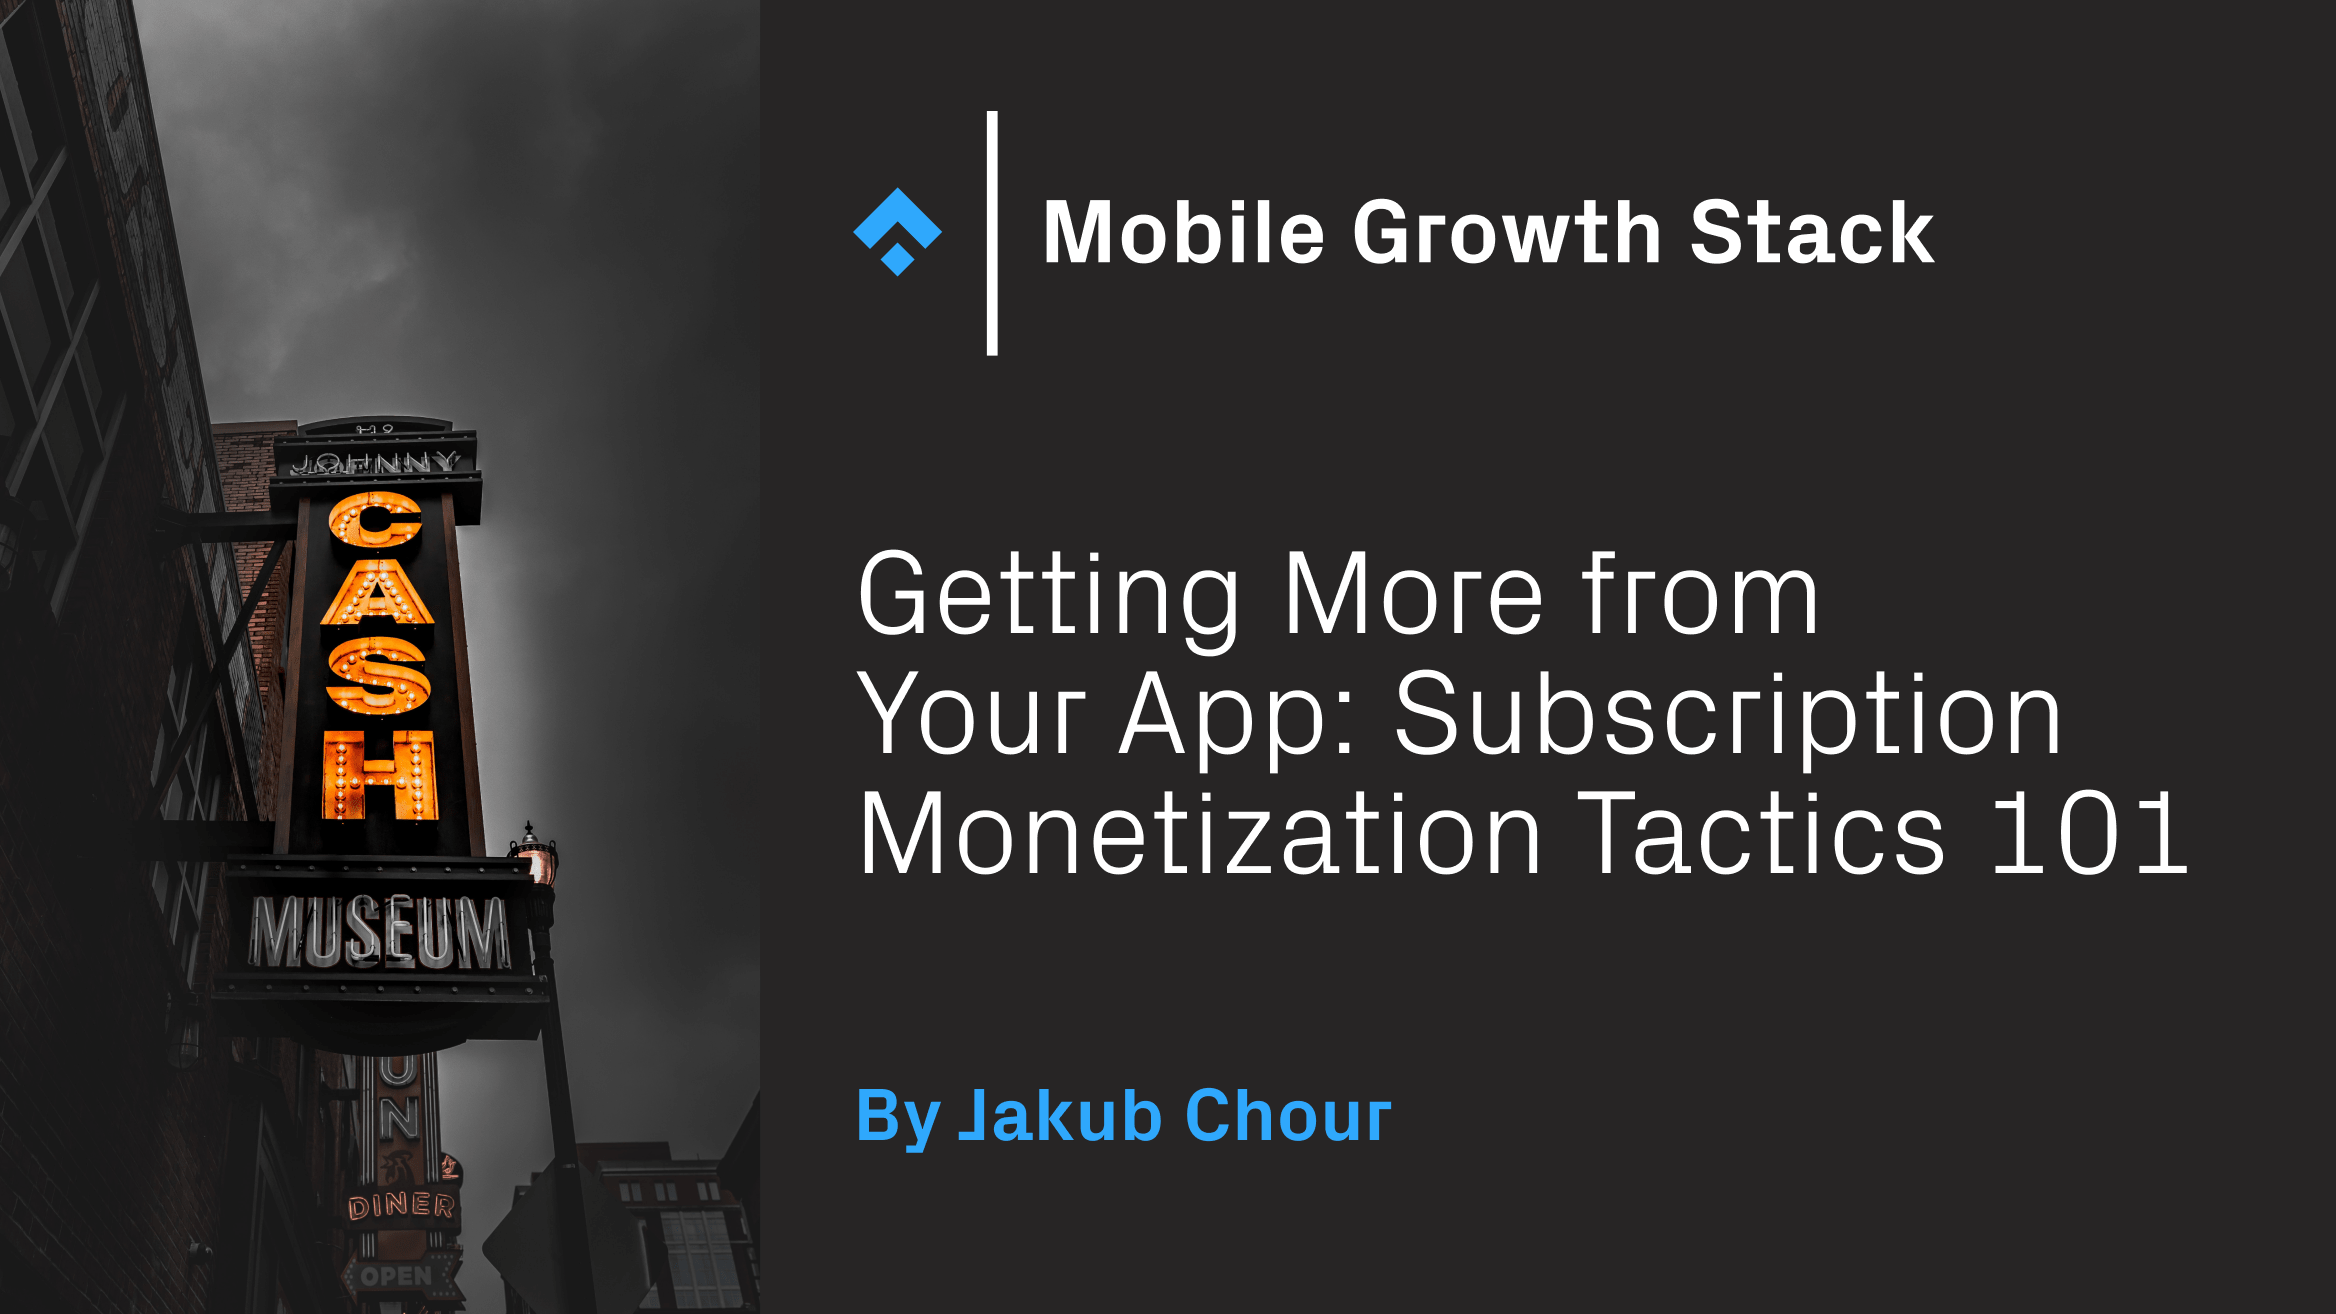 Getting More from Your App: Subscription Monetization Tactics 101